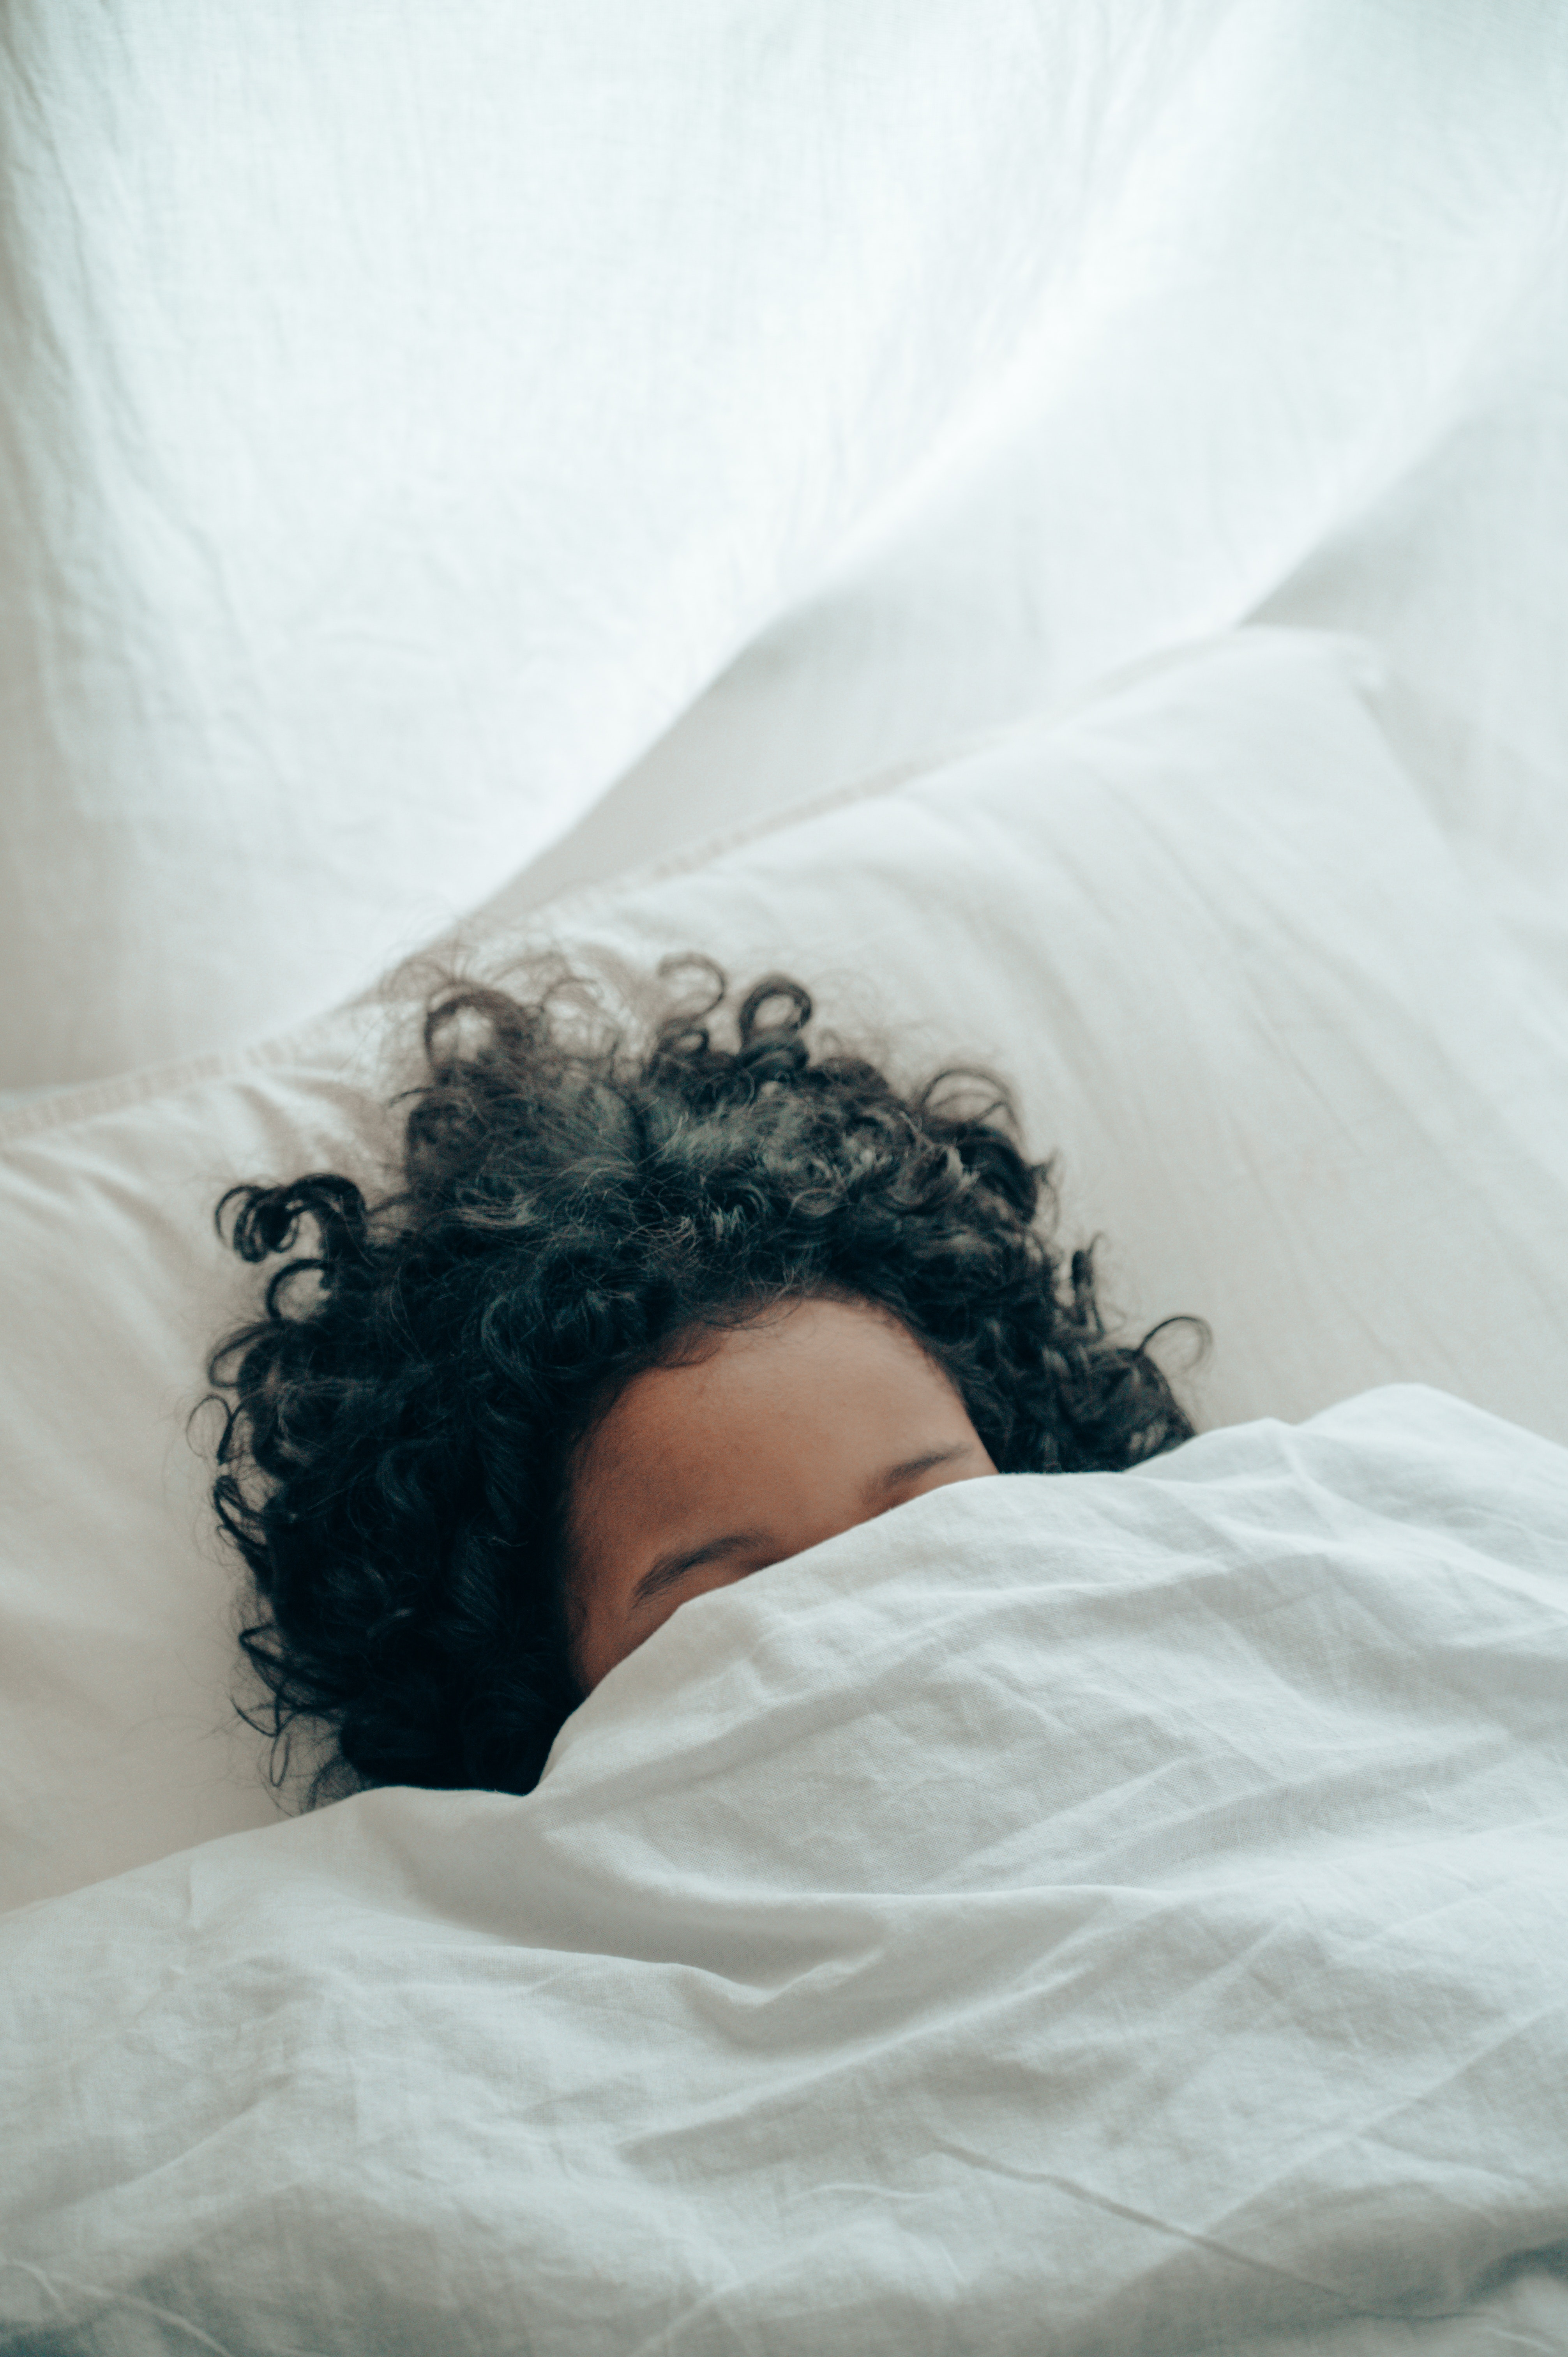 Woman in trying to sleep in bed with covers hiding her face.